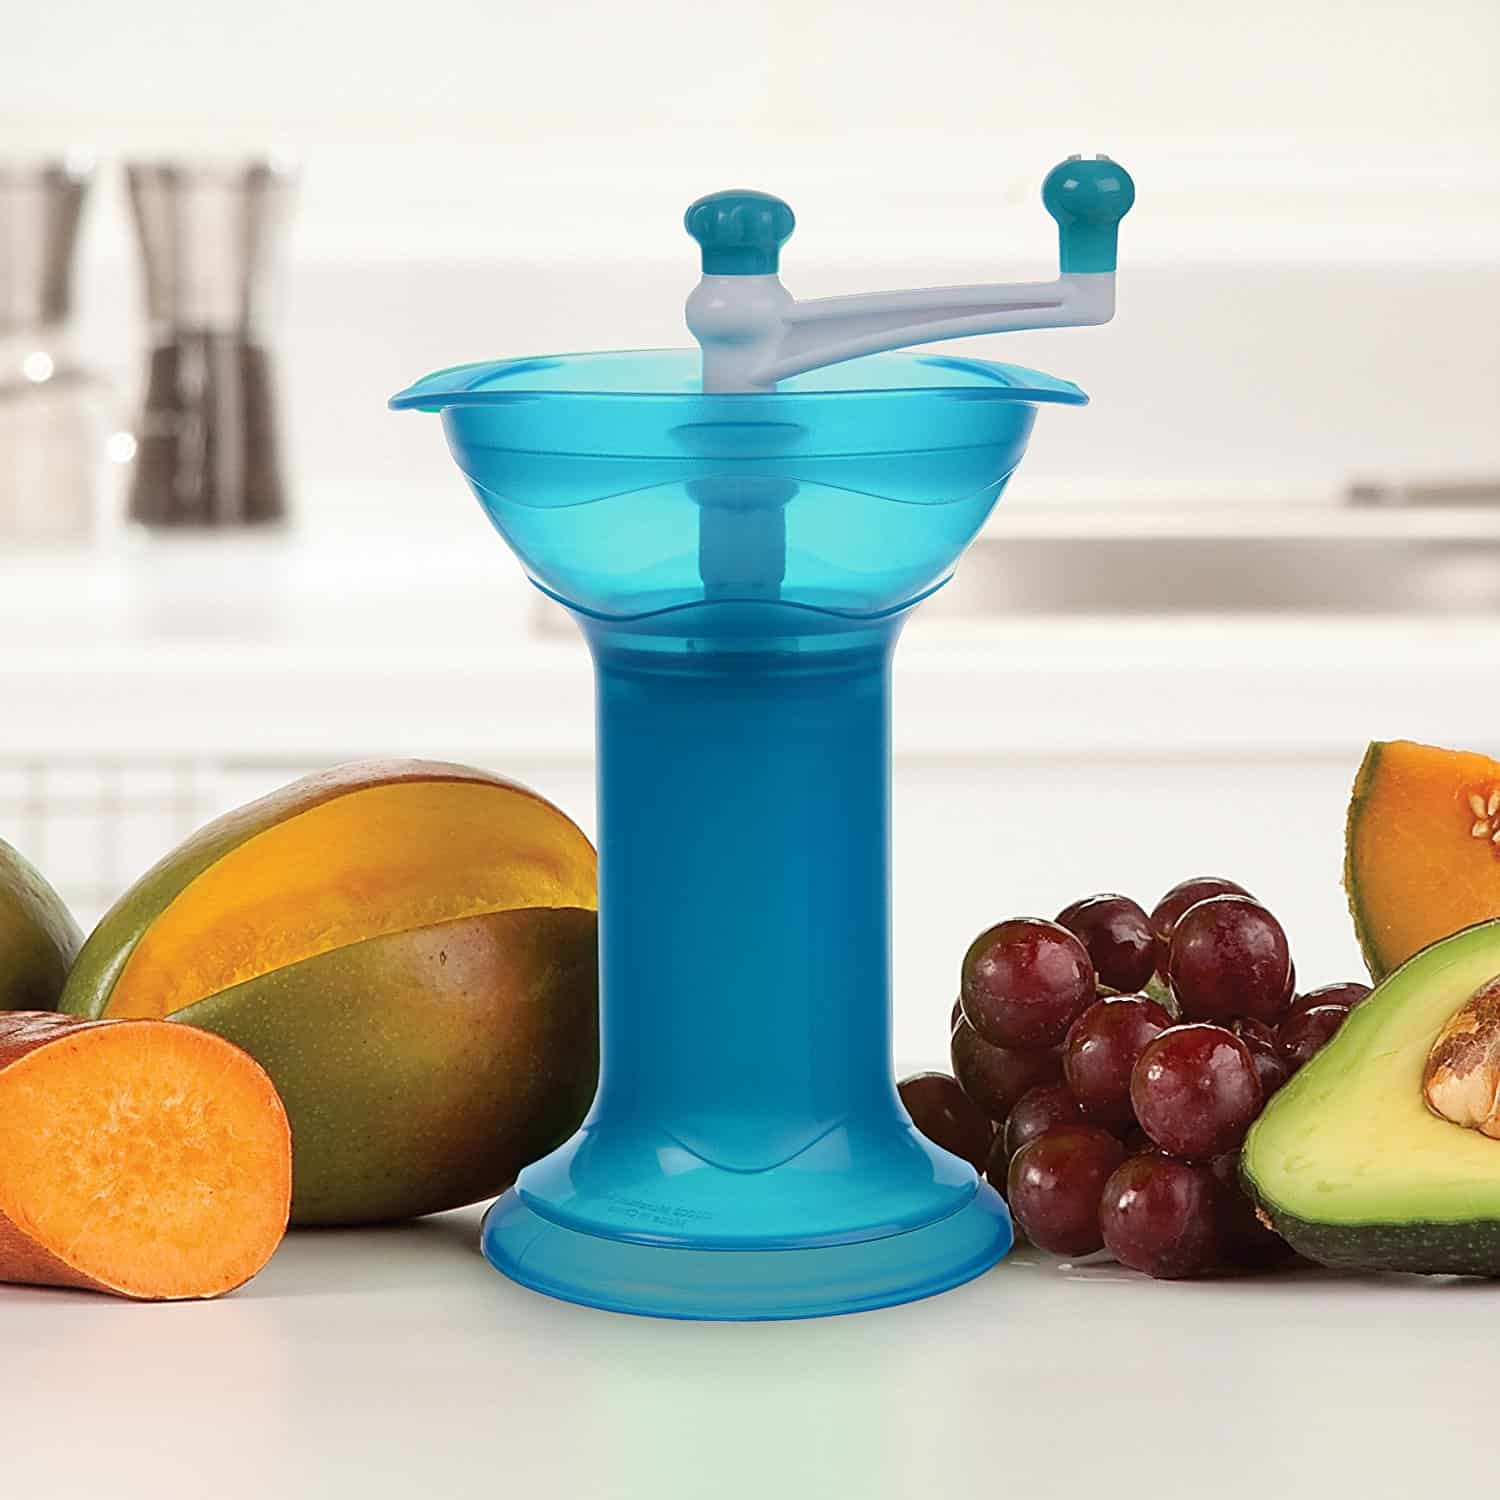 Food Processor review: Munchkin Puree Food Grinder